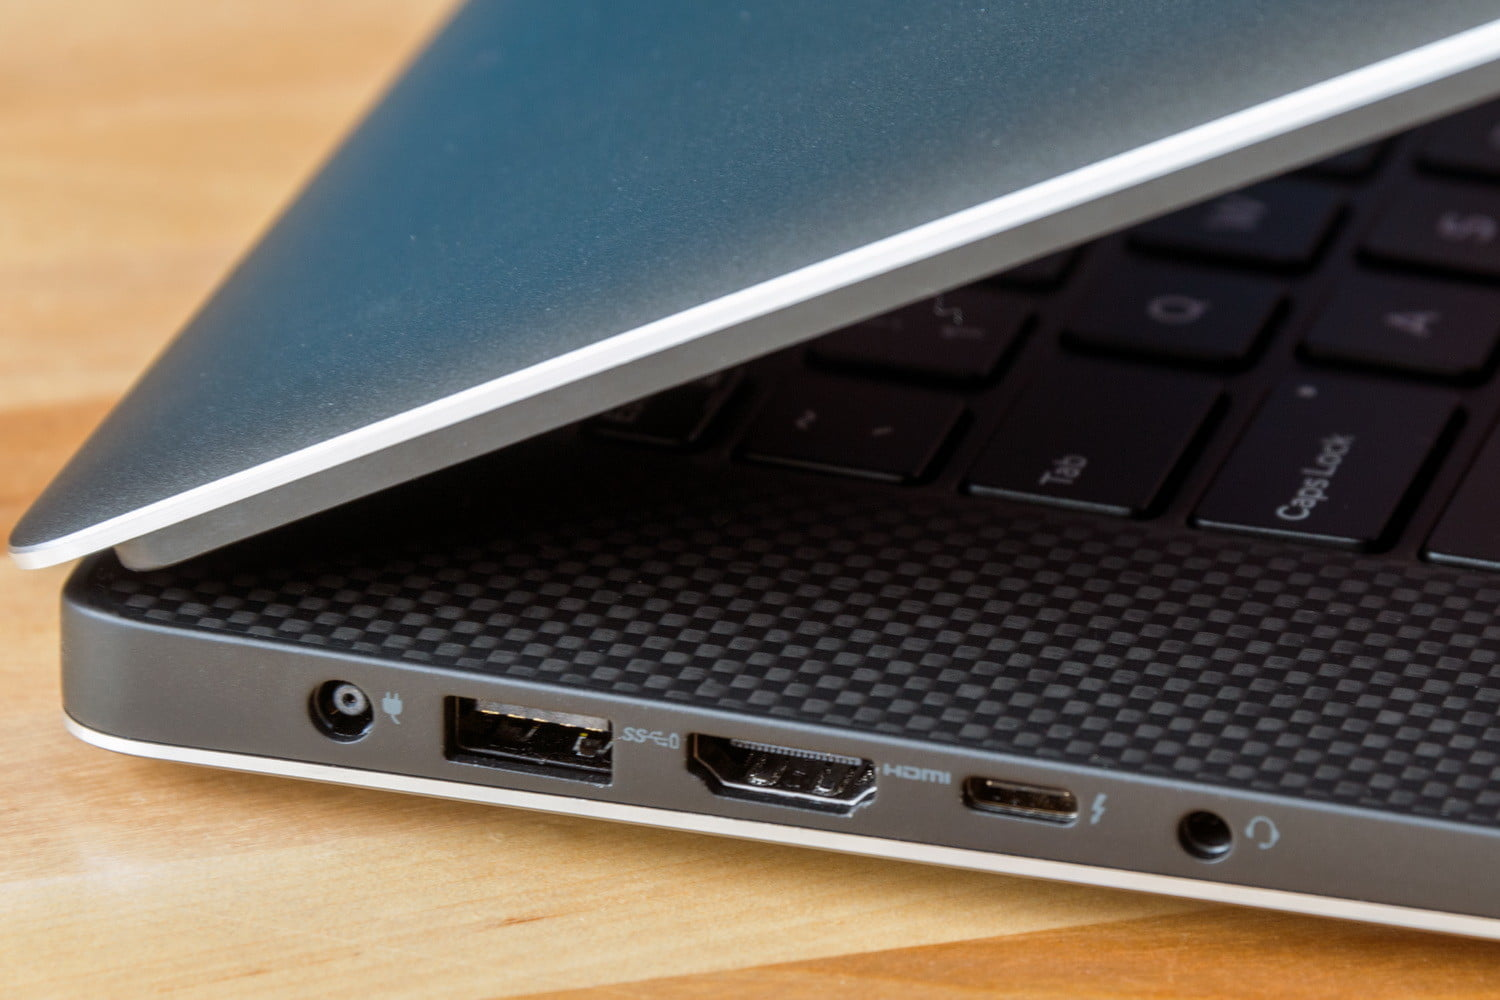 What is Thunderbolt 3? Here's everything you need to know